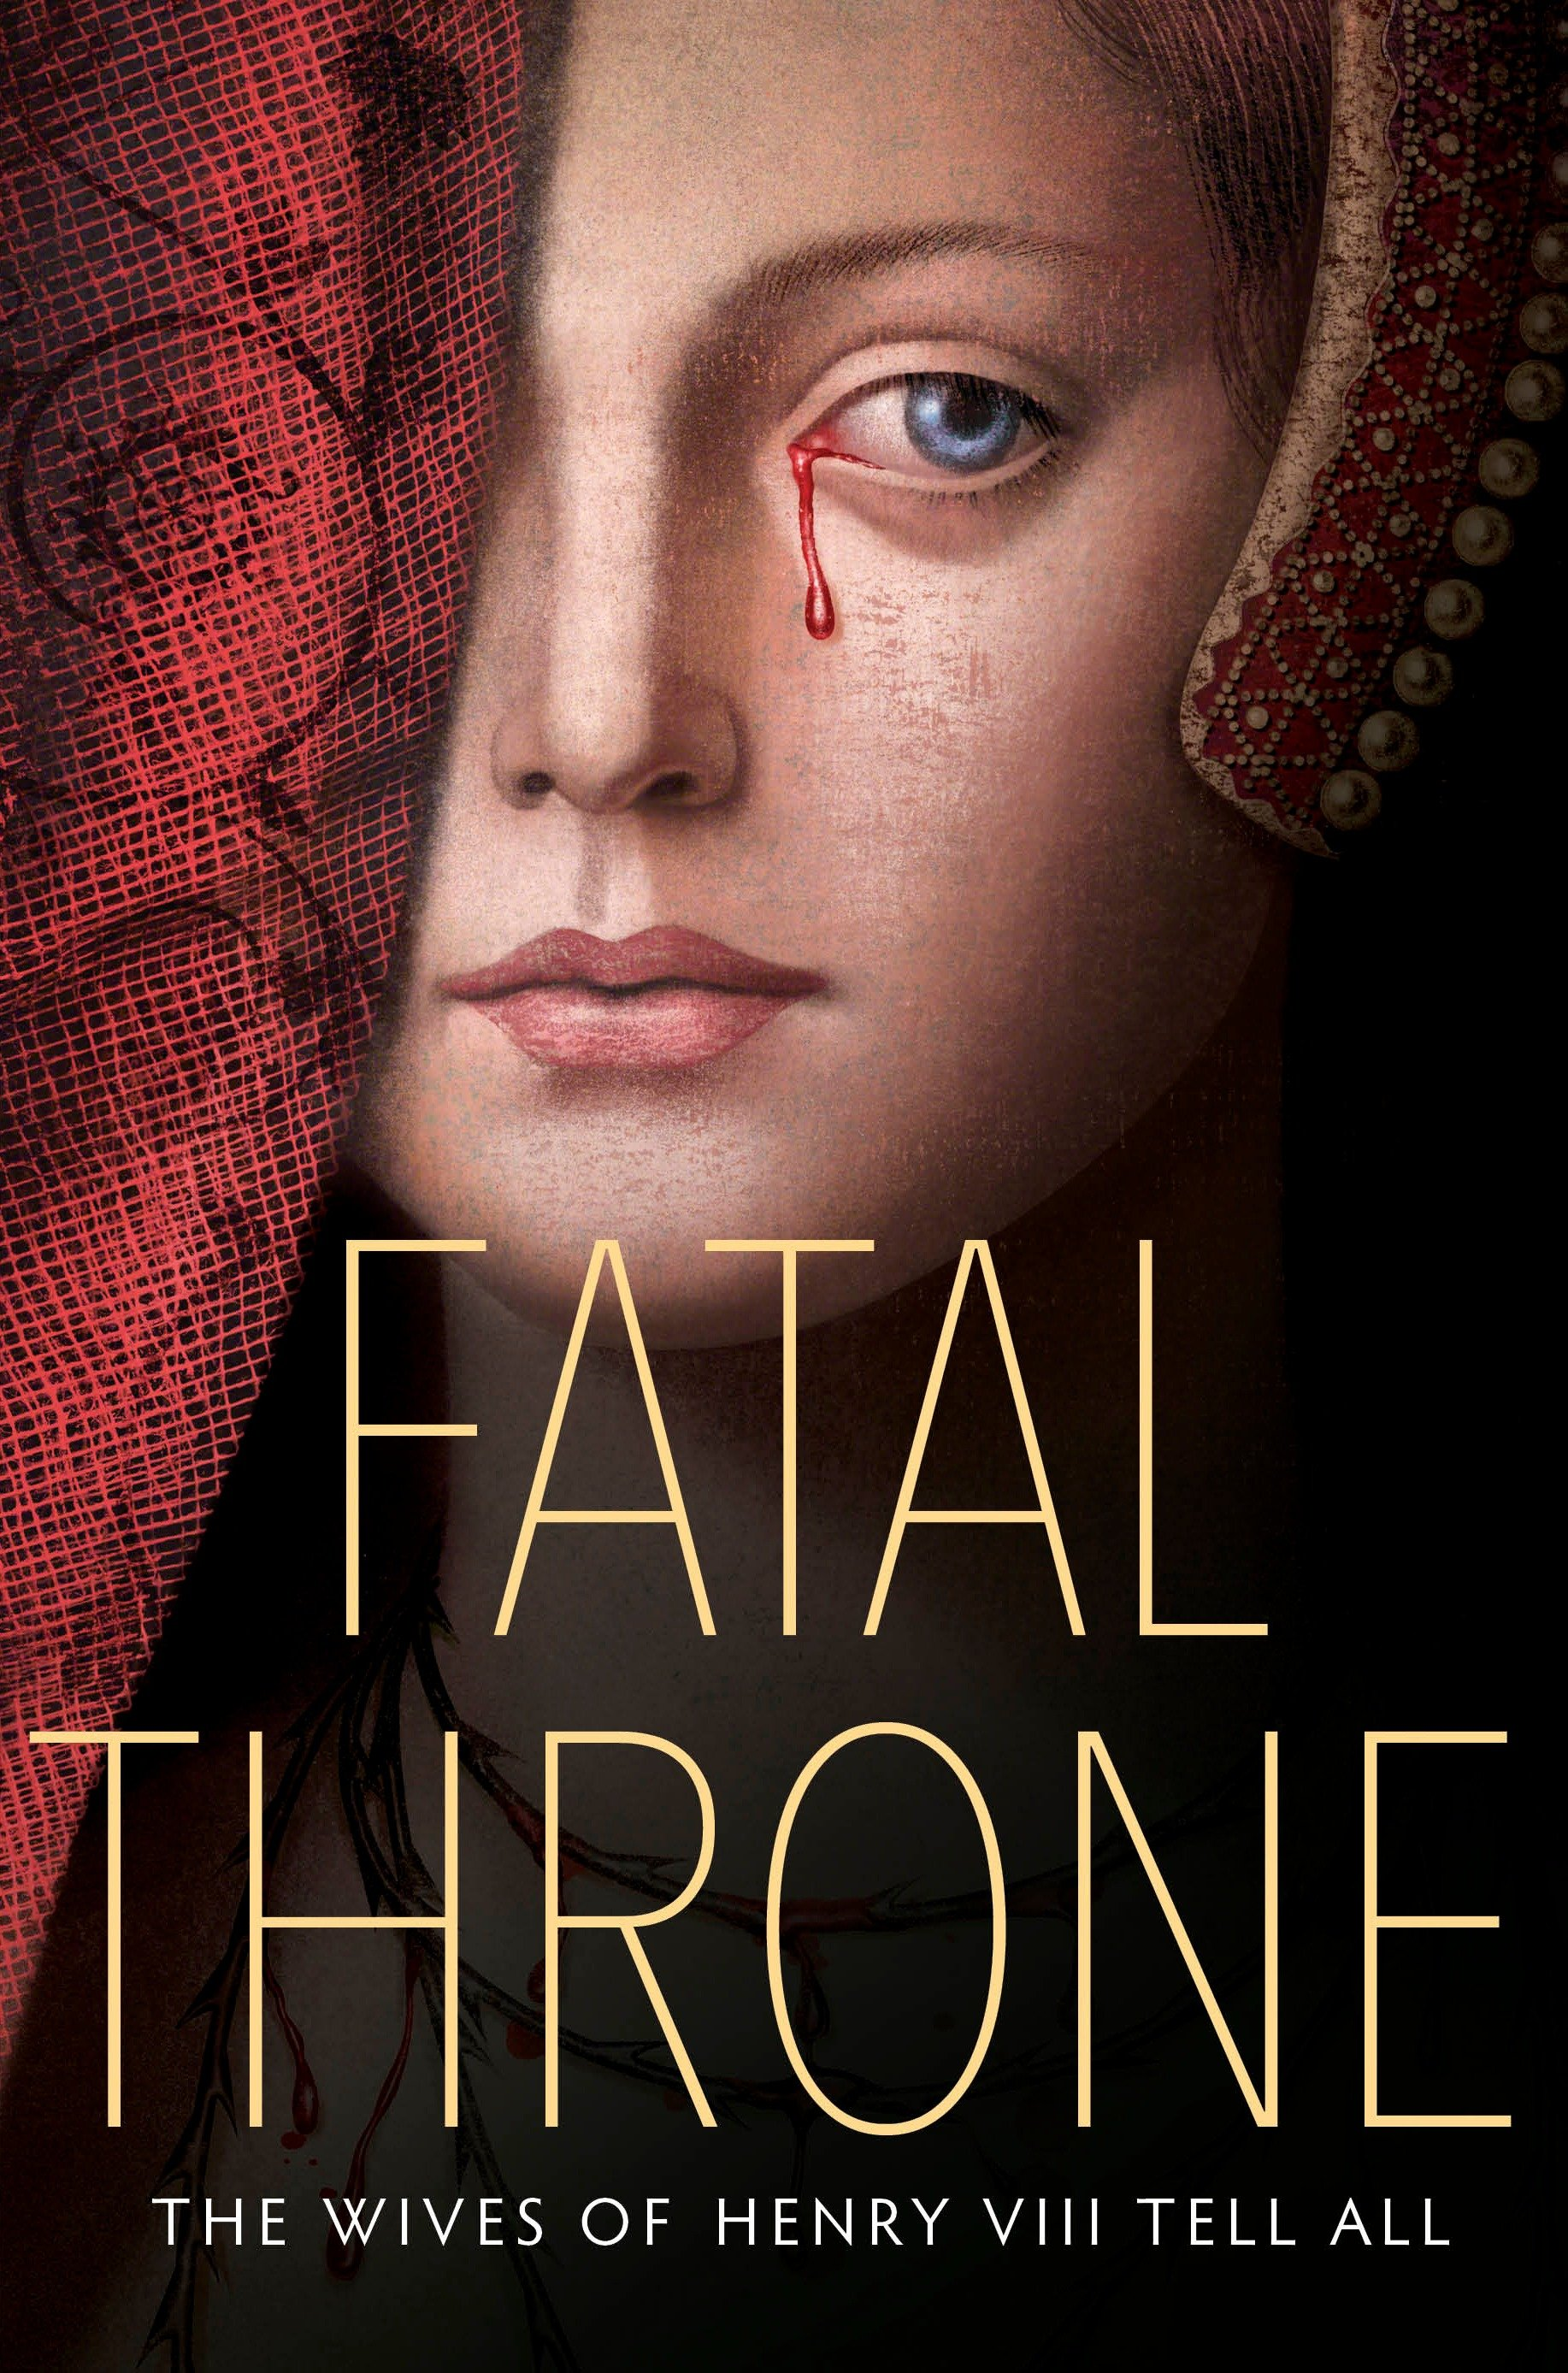 Fatal throne the wives of Henry VIII tell all cover image